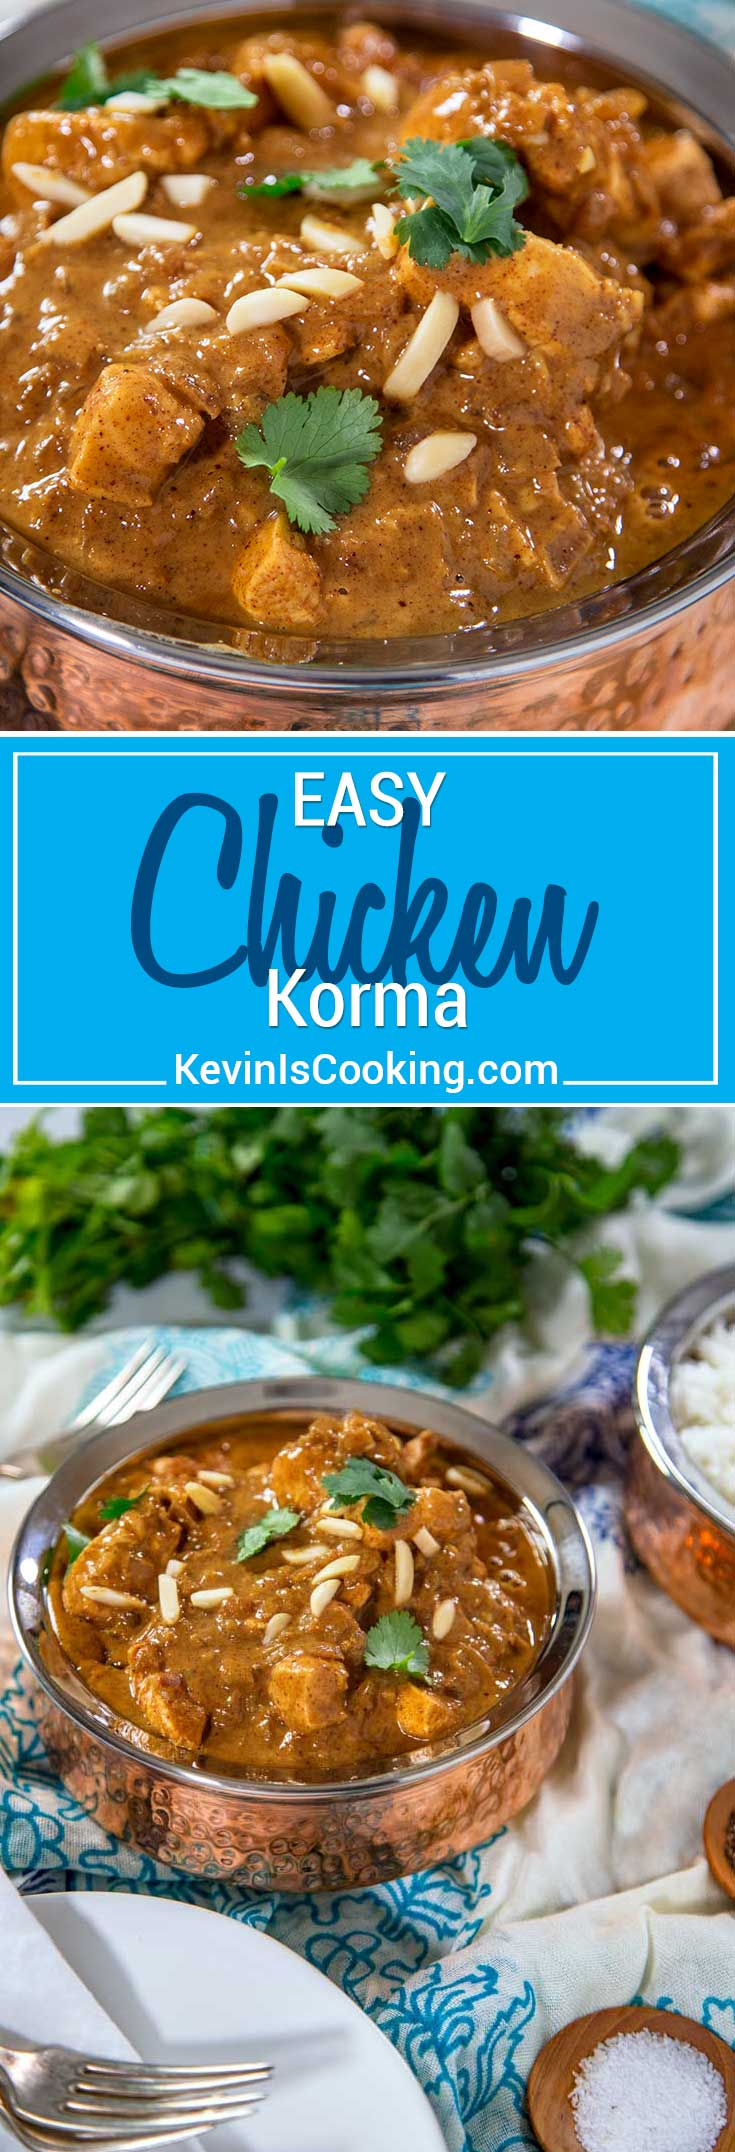 For my Easy Chicken Korma I give whole spice substitutions, use almond butter instead of soaking and puréeing, and use chopped, boneless chicken. The sauce is amazing and perfect served with rice. #chicken #Indian #korma